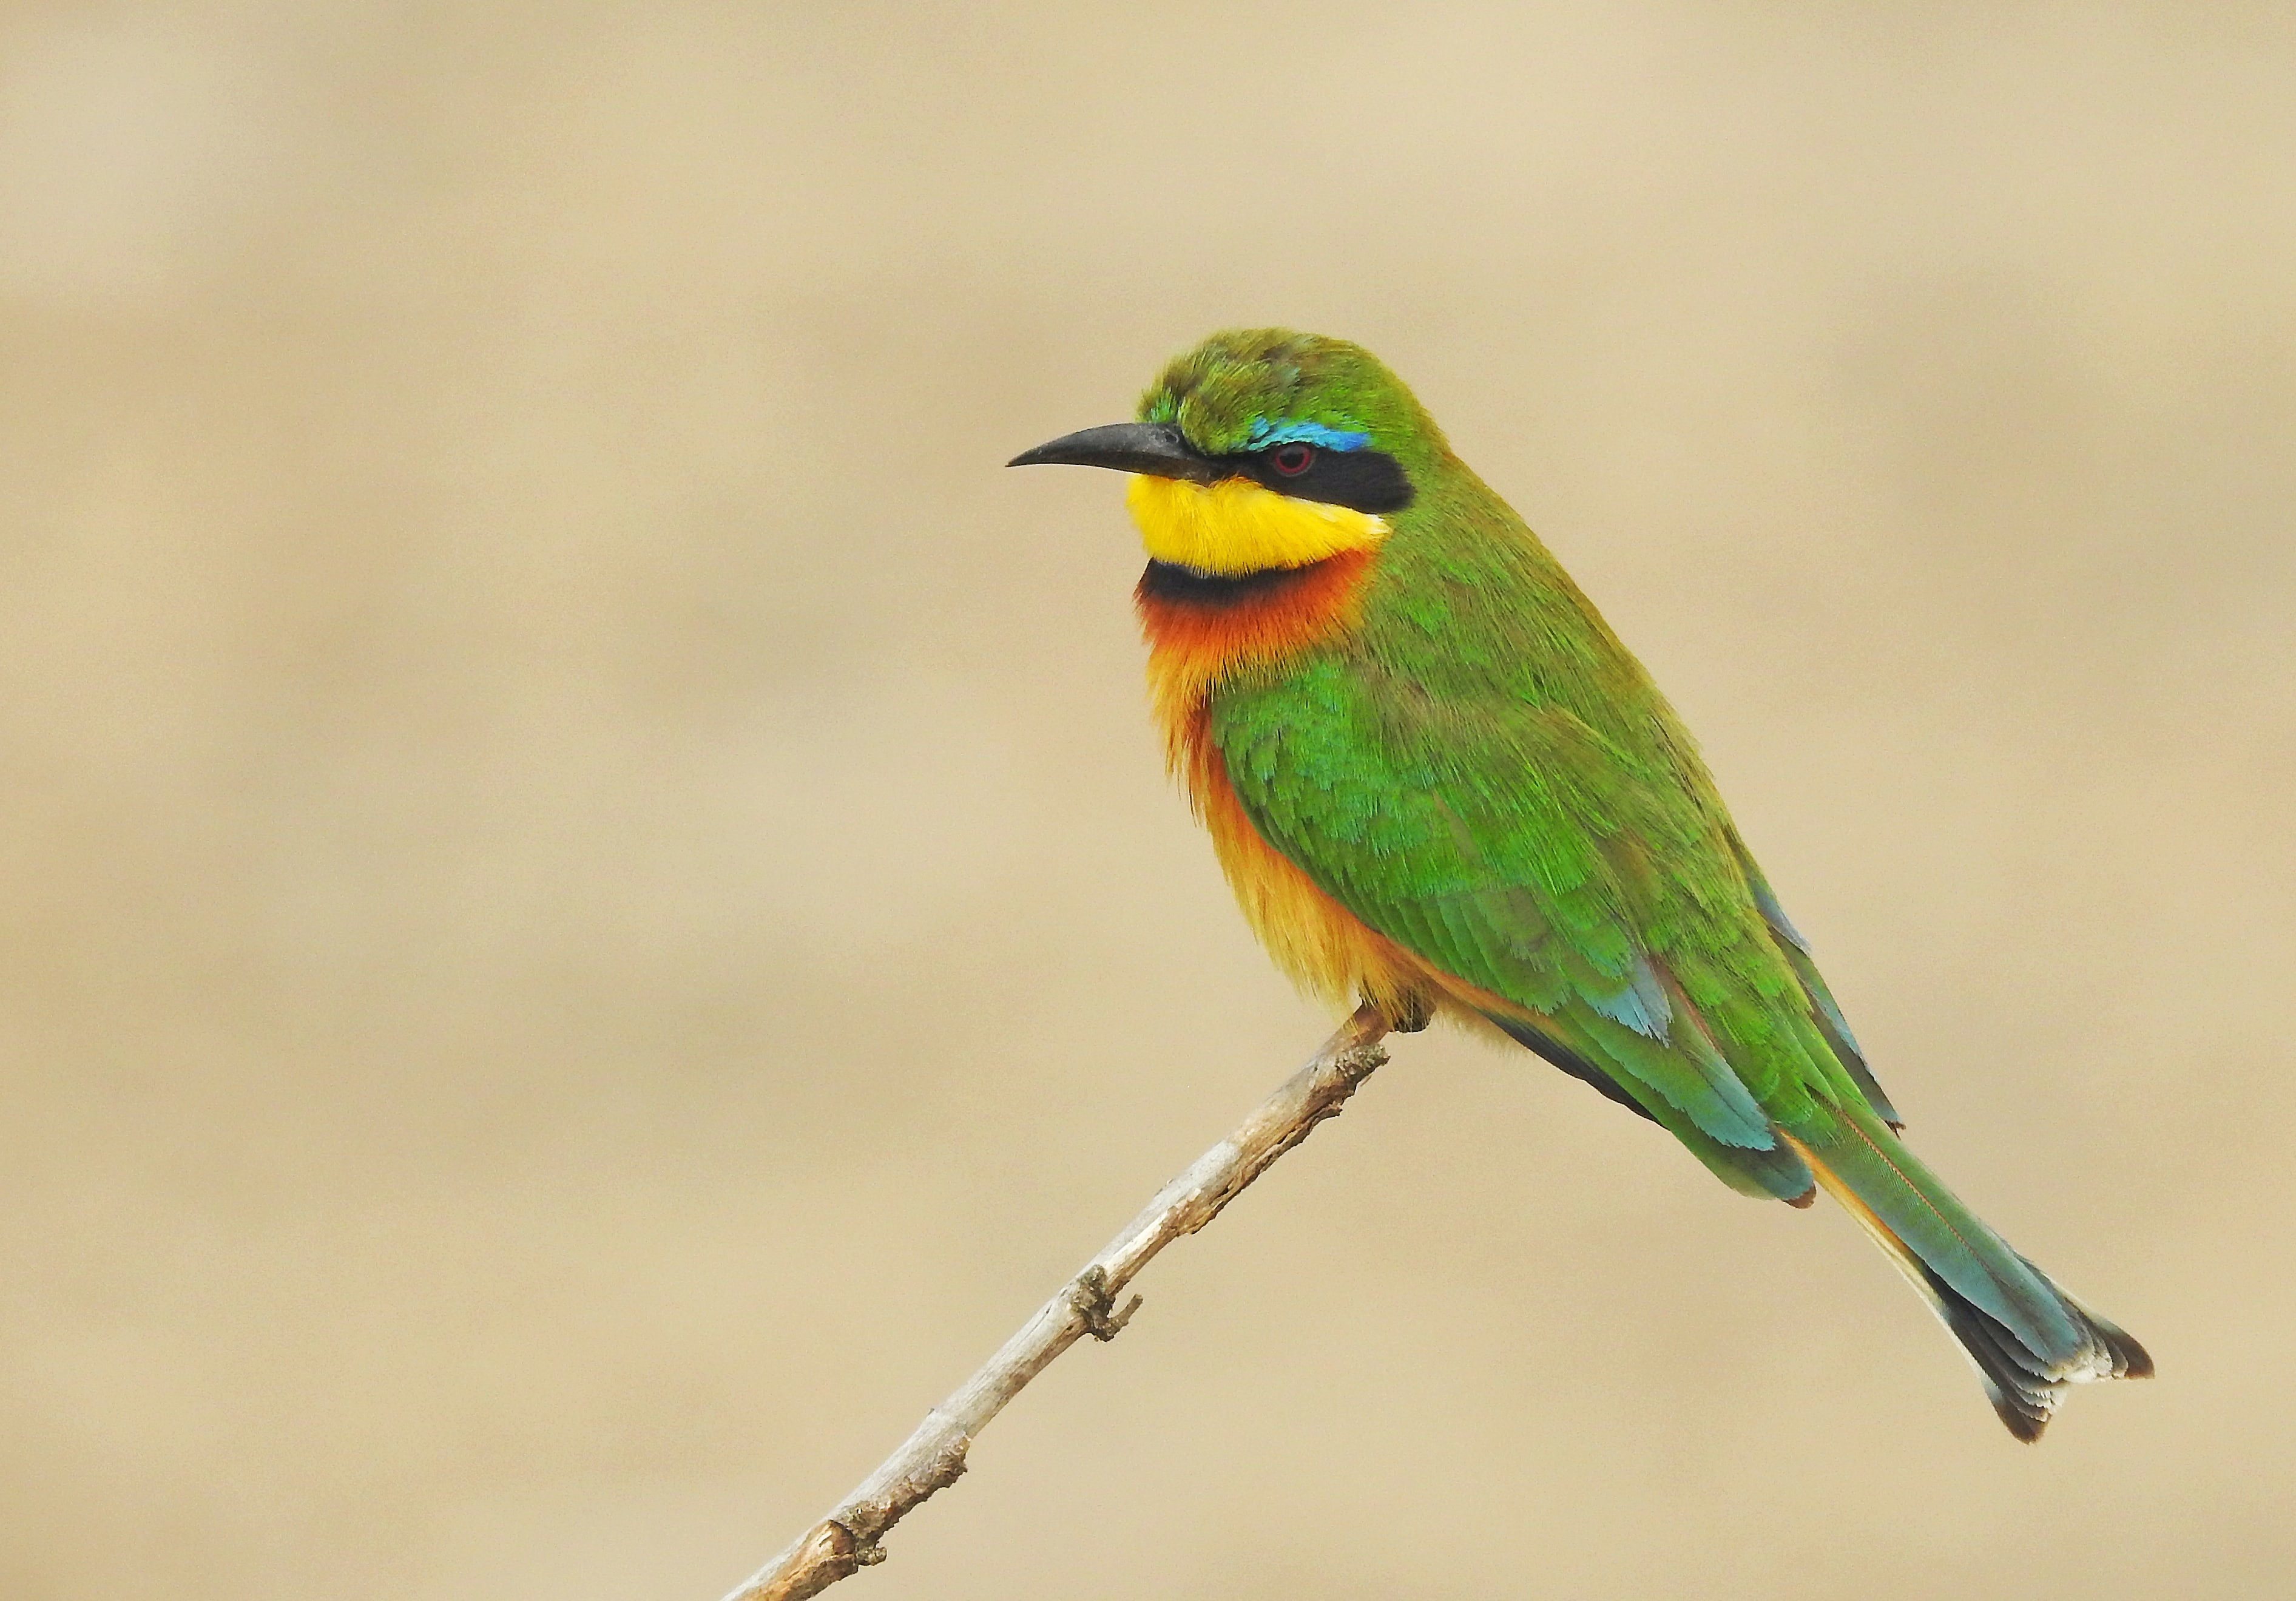 green, yellow, and red bird perched on brown stick